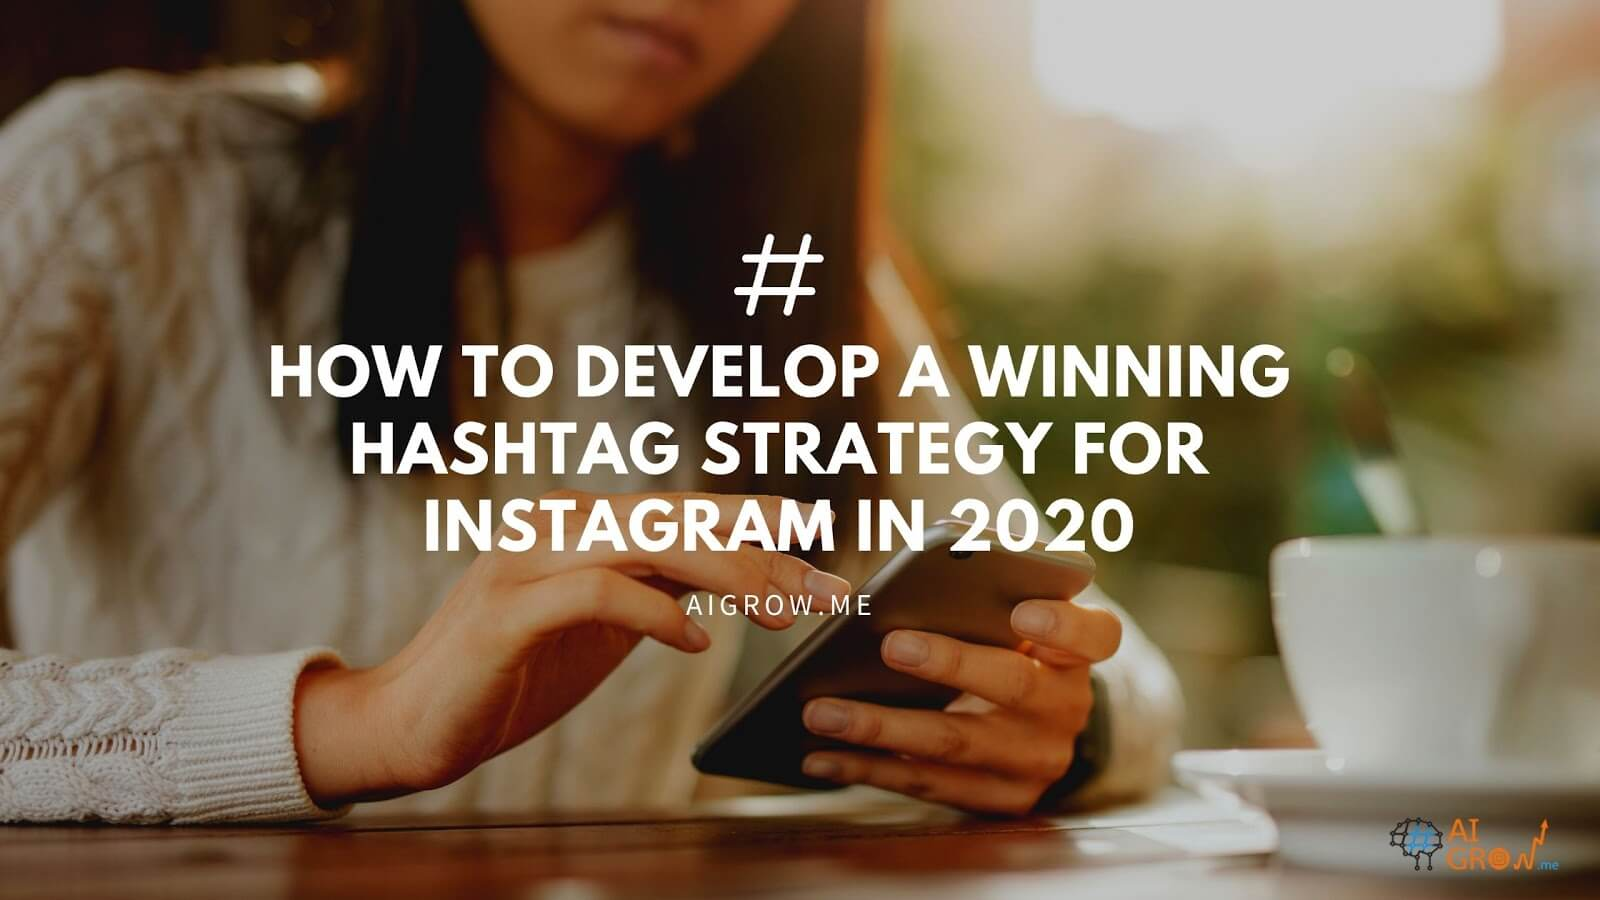 How to develop a winning hashtag strategy for Instagram in 2020